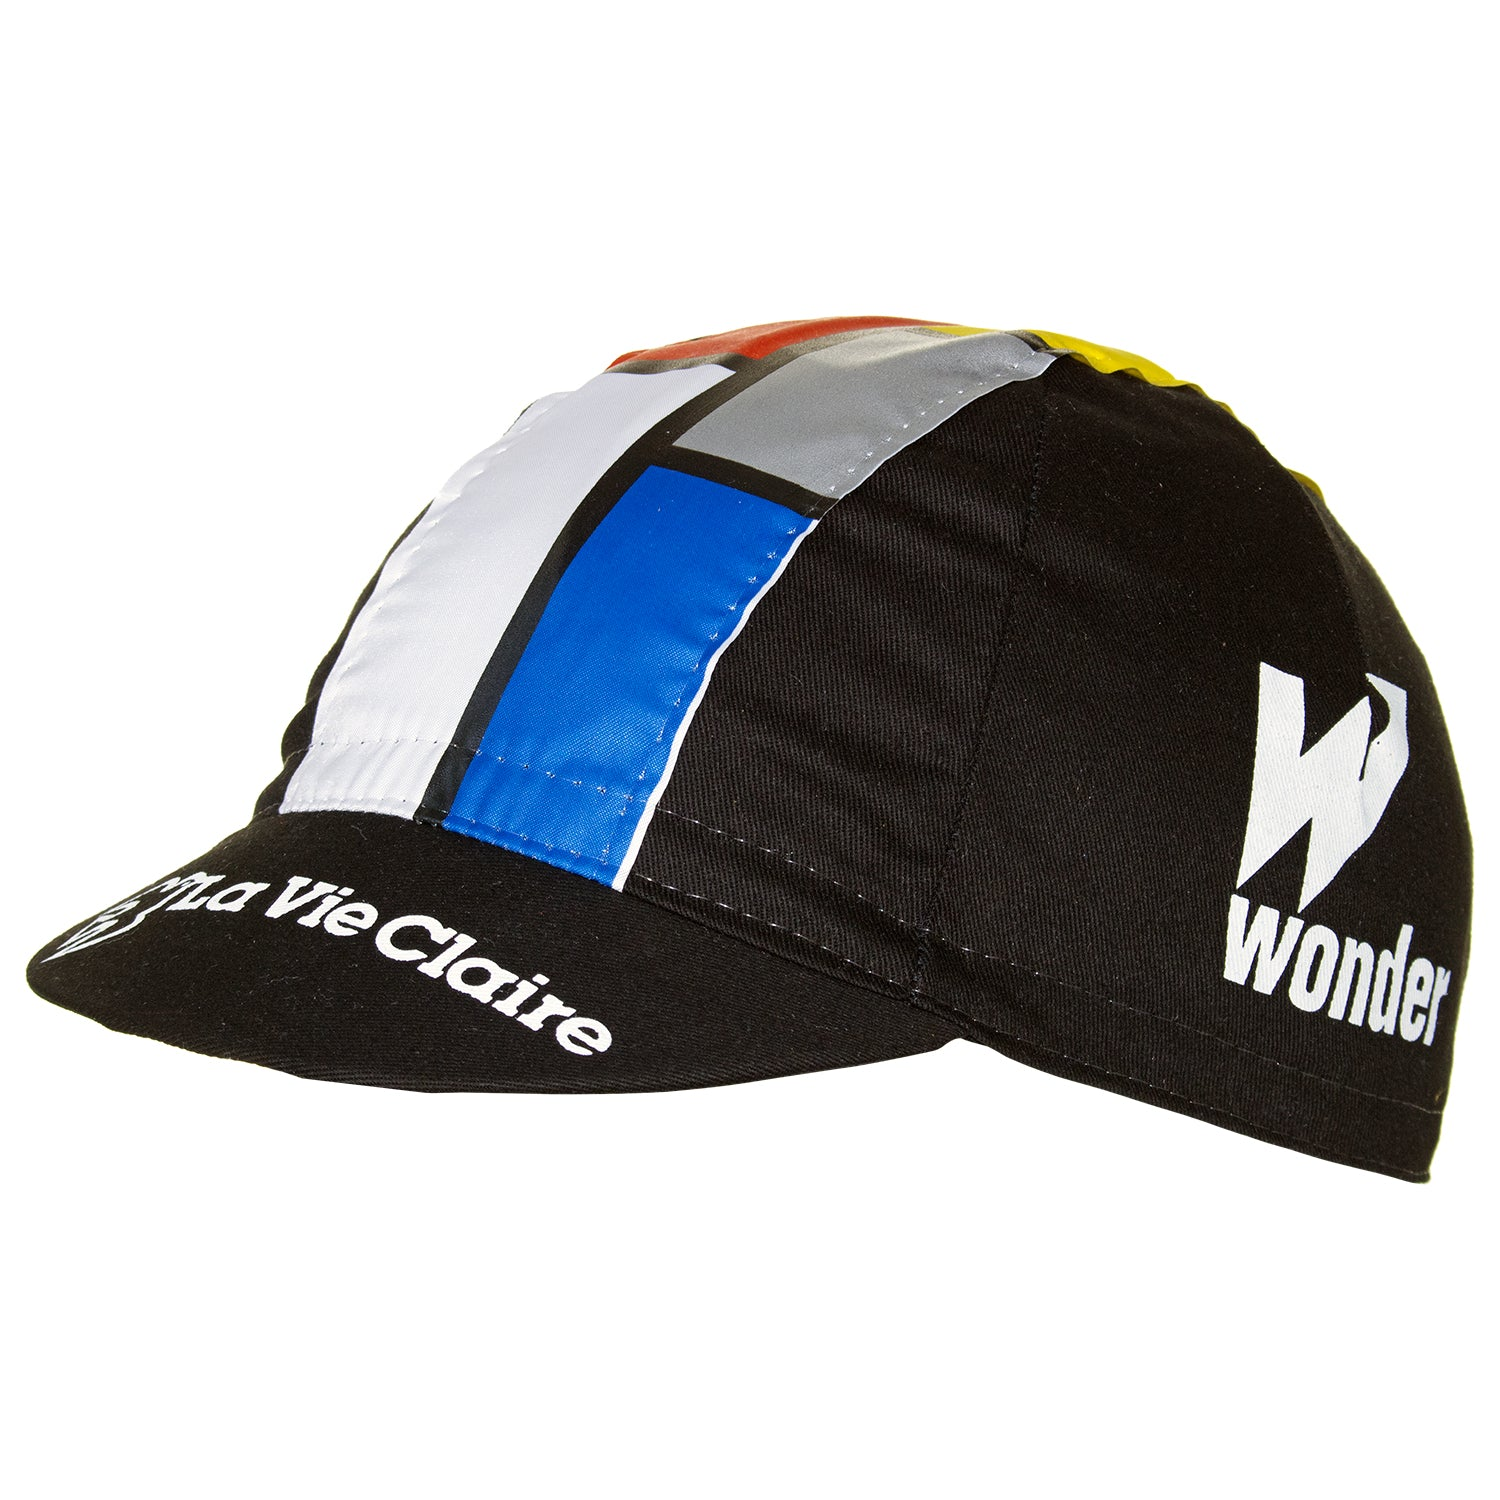 b2179a803ab La Vie Claire Wonder Radar Retro Black Cotton Cycling Cap